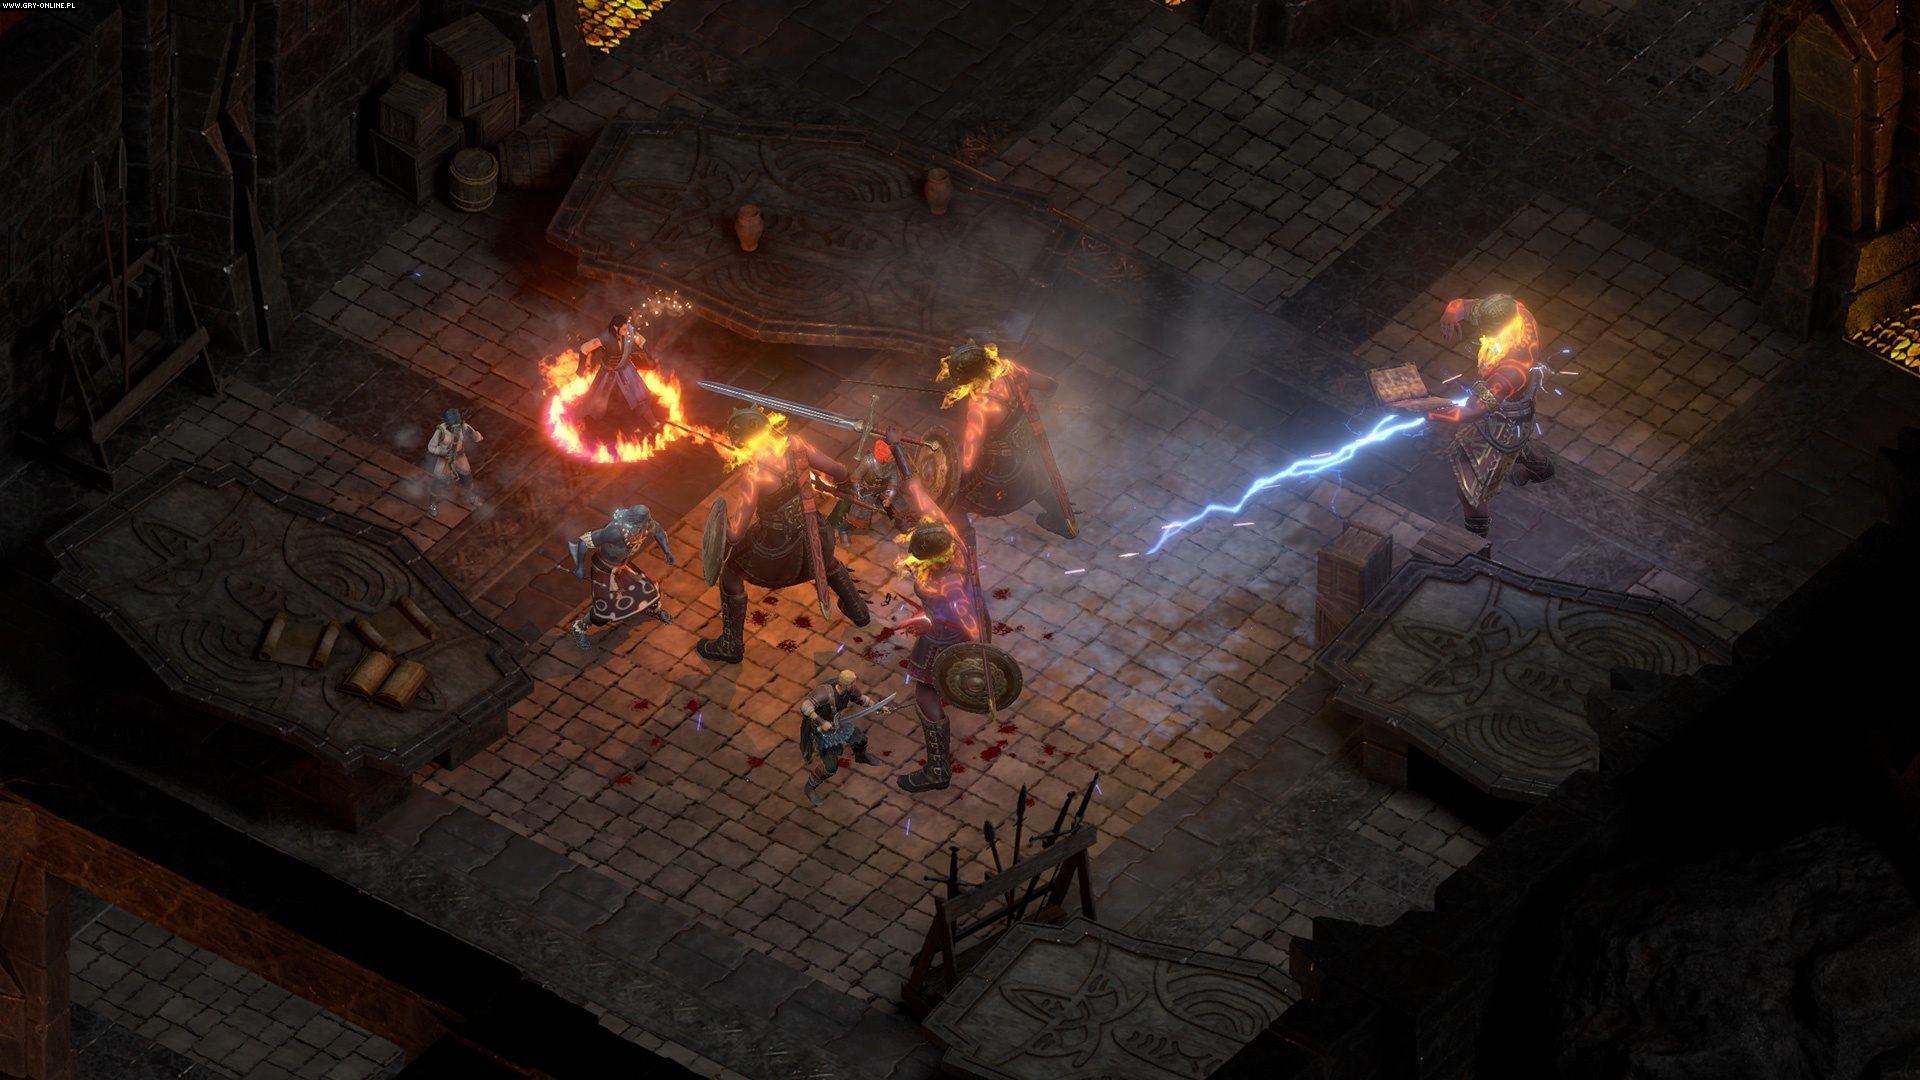 Pillars of Eternity II: Deadfire PC, PS4, XONE, Switch Games Image 17/27, Obsidian Entertainment, Versus Evil